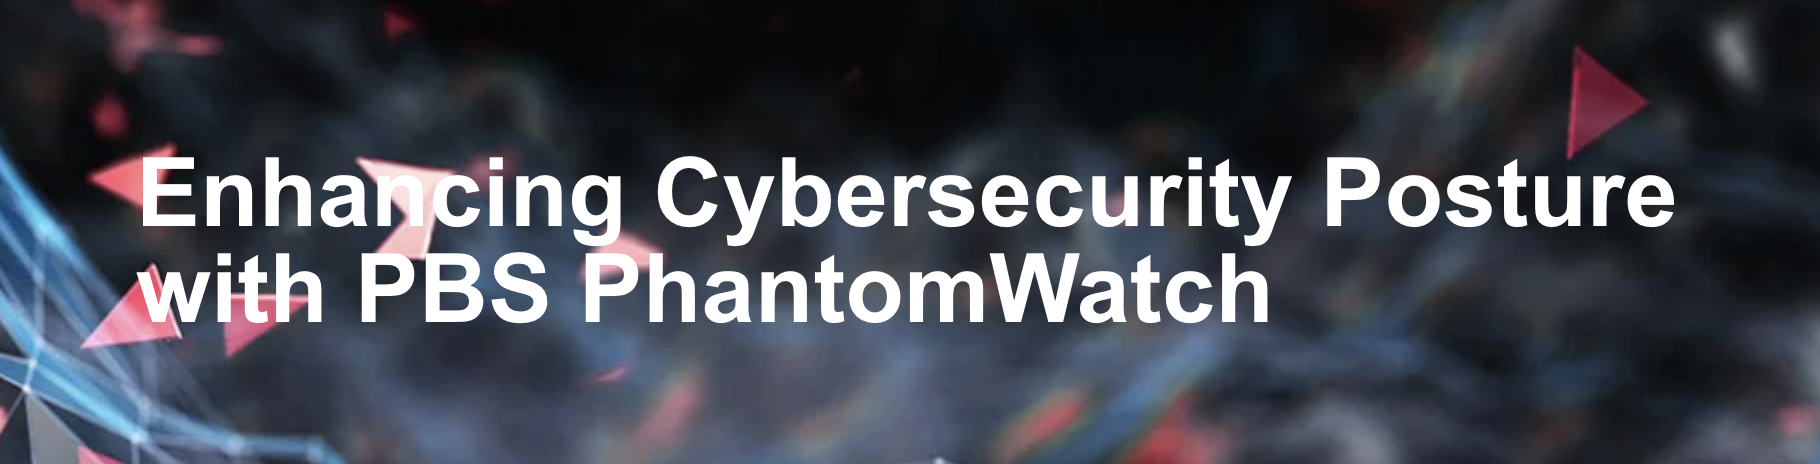 Enhancing Cybersecurity Posture with PBS PhantomWatch